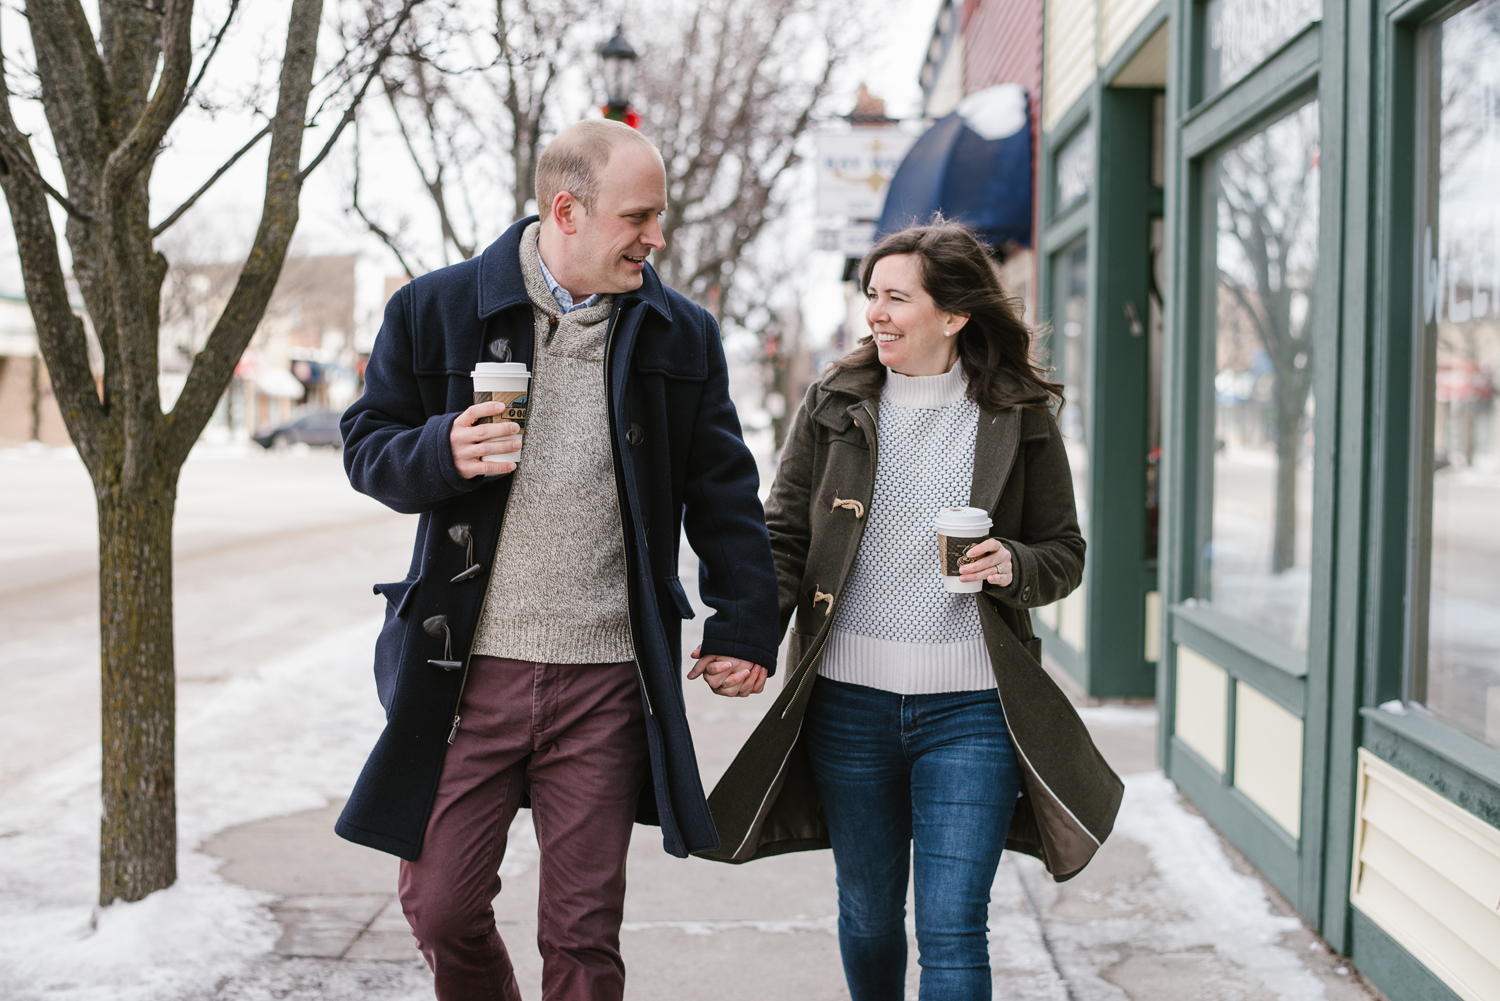 frankfort-michigan-winter-engagement-session (9).jpg